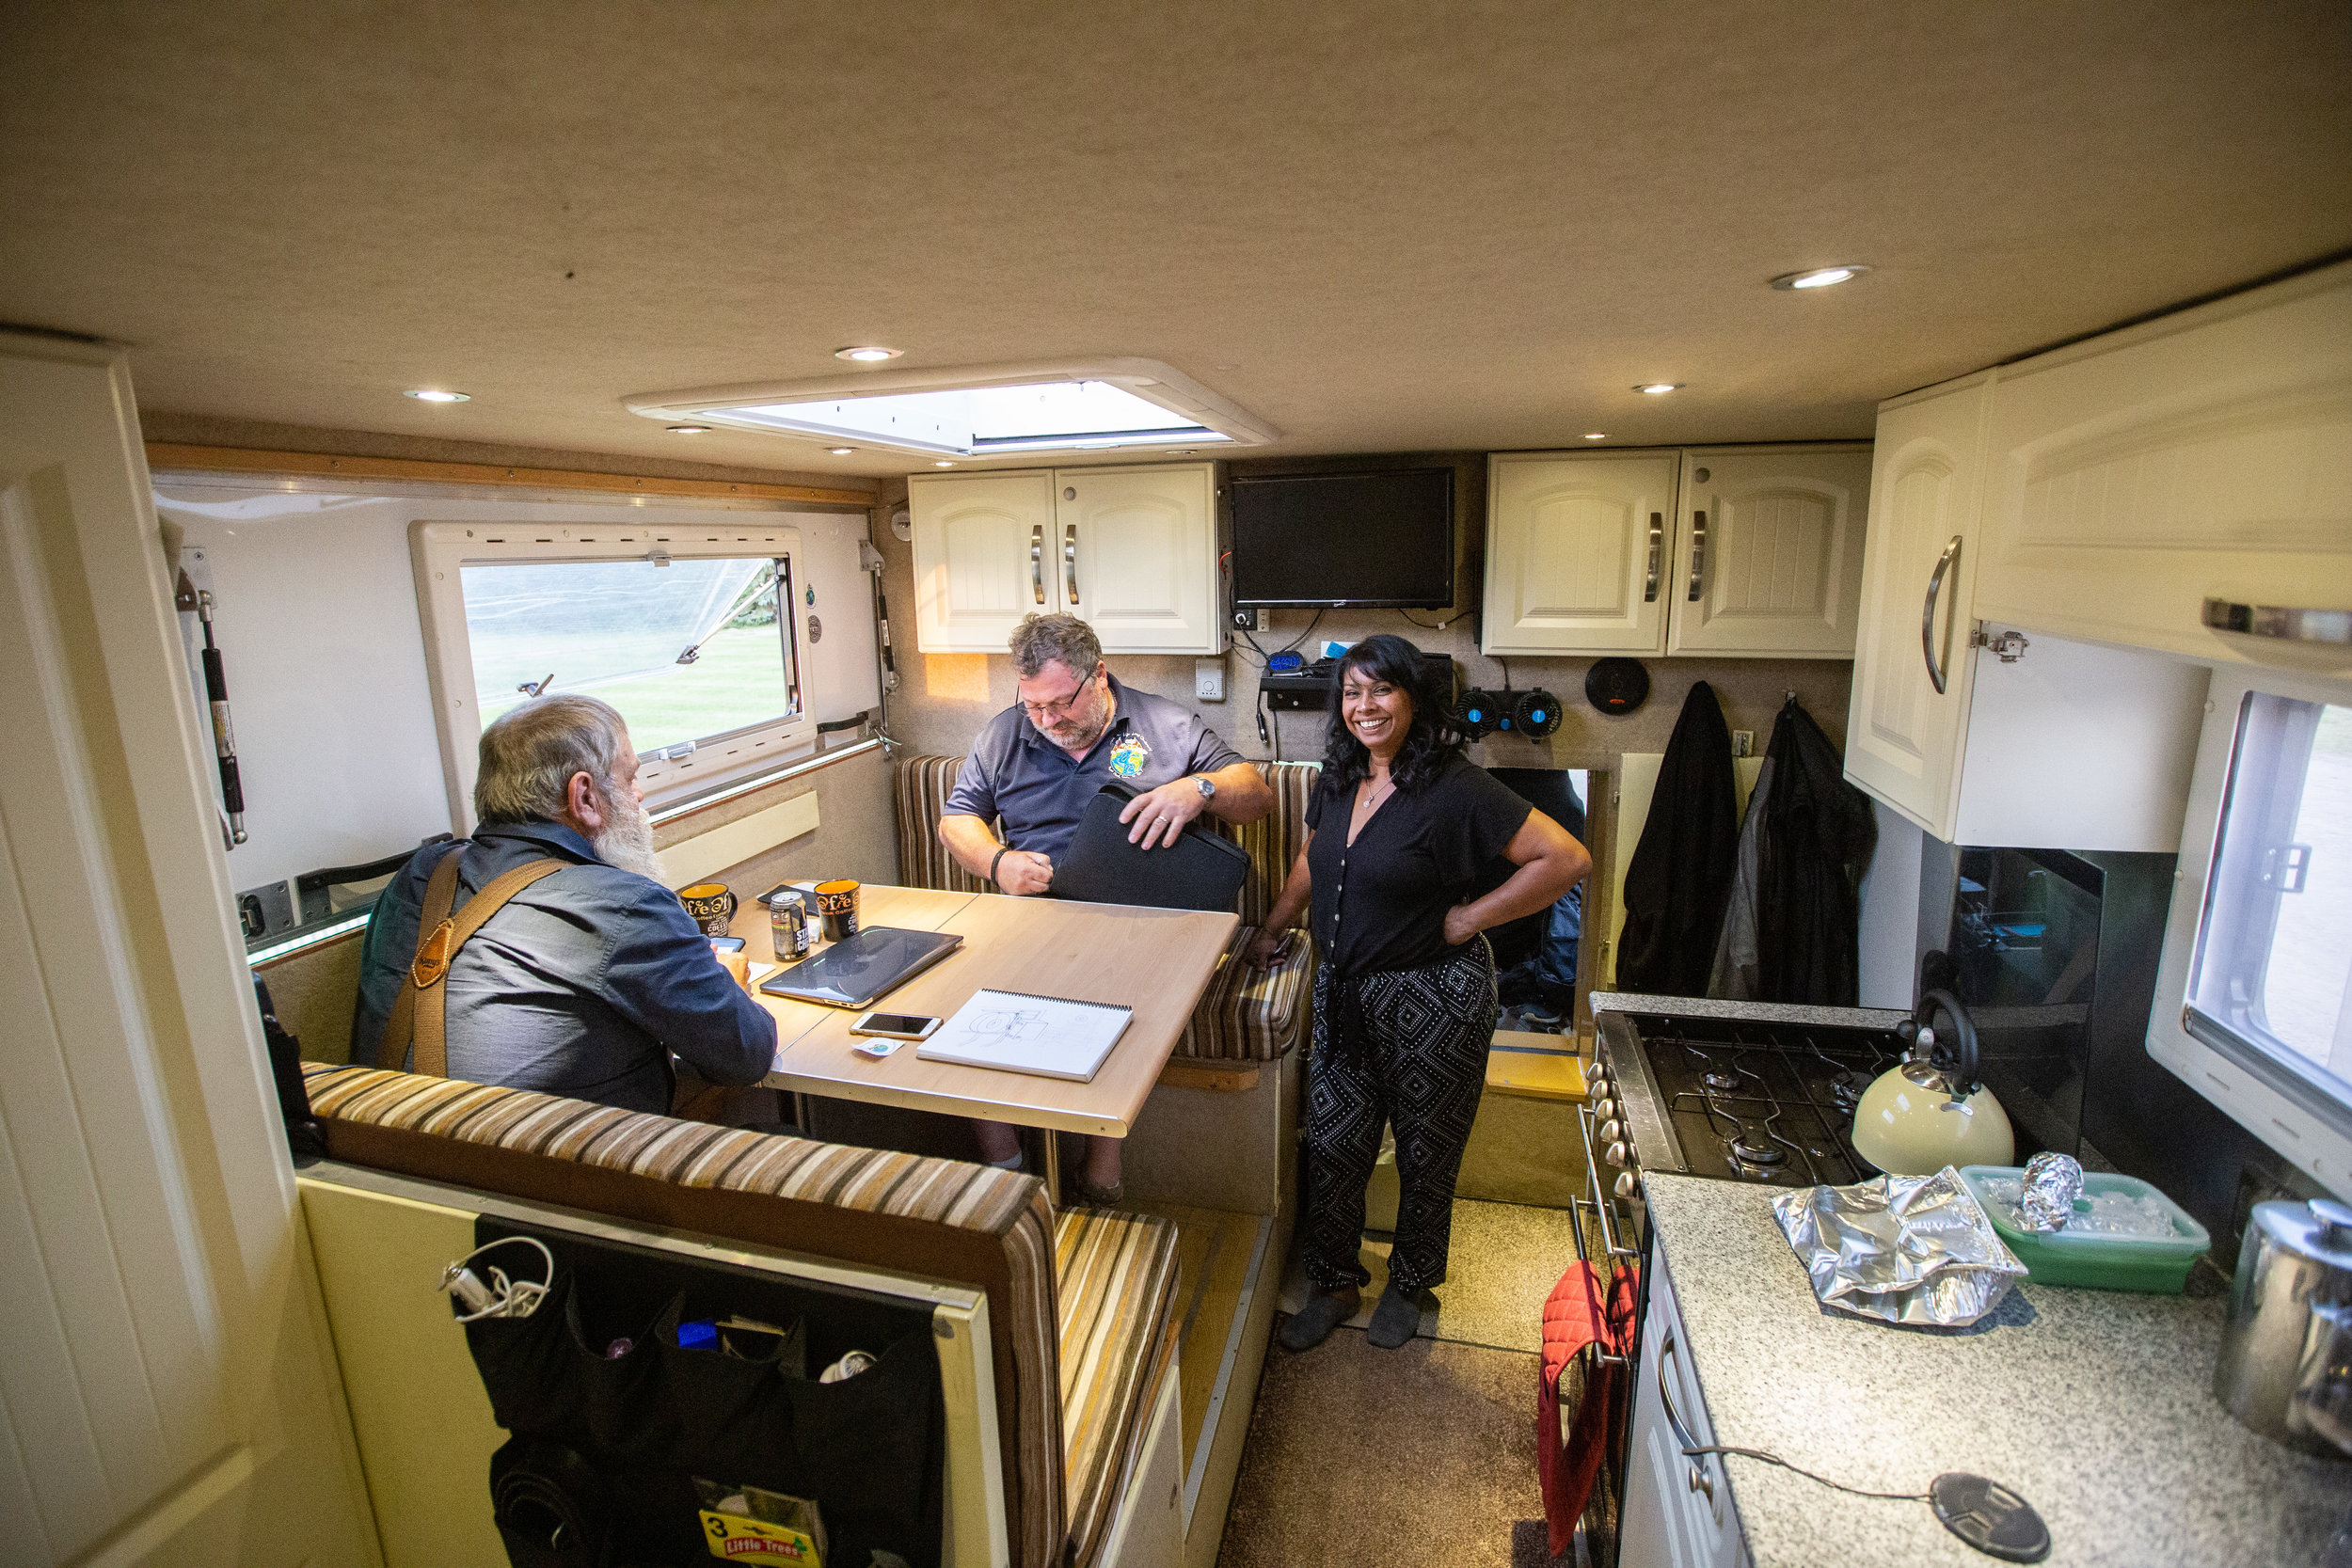 We sat six people at this dining table. Who says you can't enjoy lots of company in a tiny home? Andy and Mandy's home is really nicely designed and executed, if you would like to see more of their travels and some more of their build check them out at  https://justoutforadrive.blog/the-build/ .